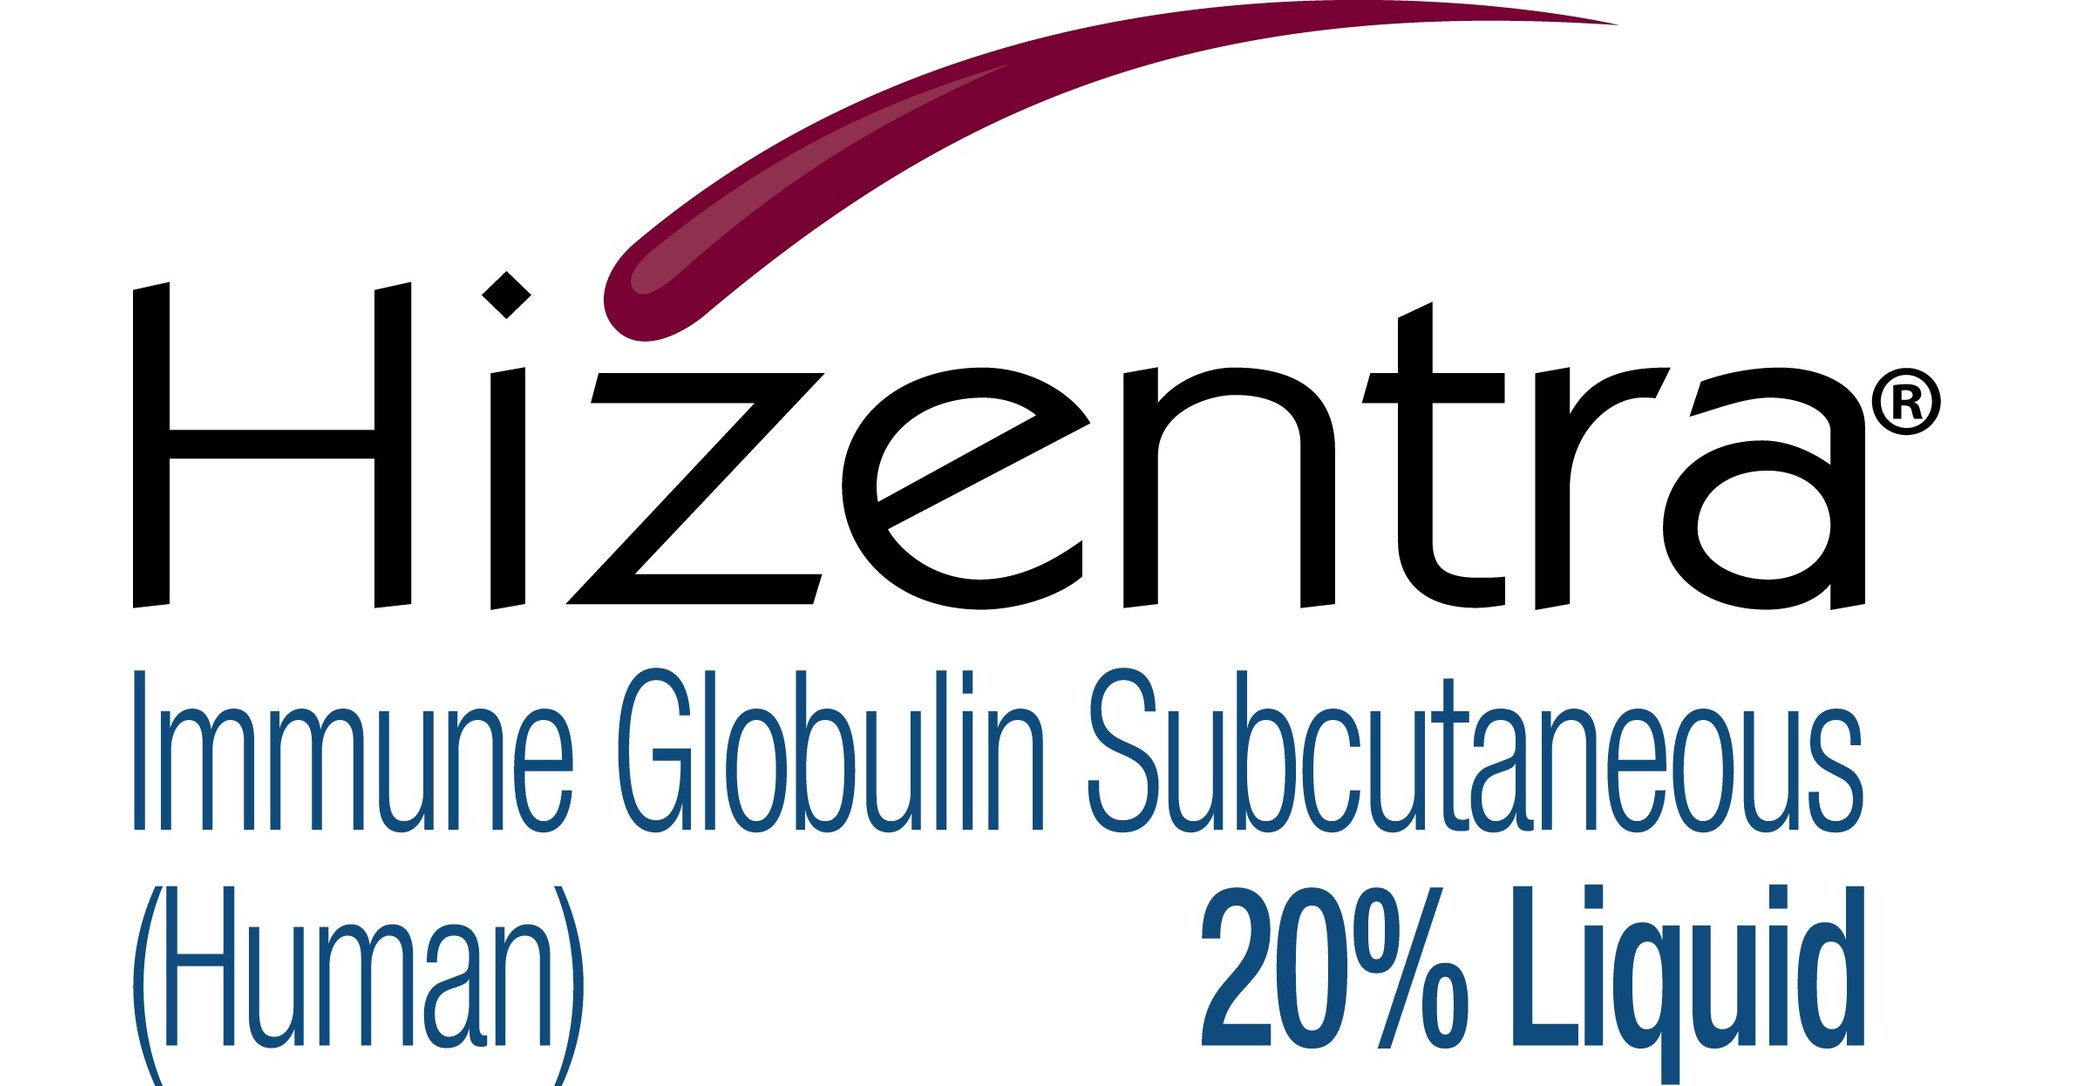 FDA Approves Hizentra® (Immune Globulin Subcutaneous [Human